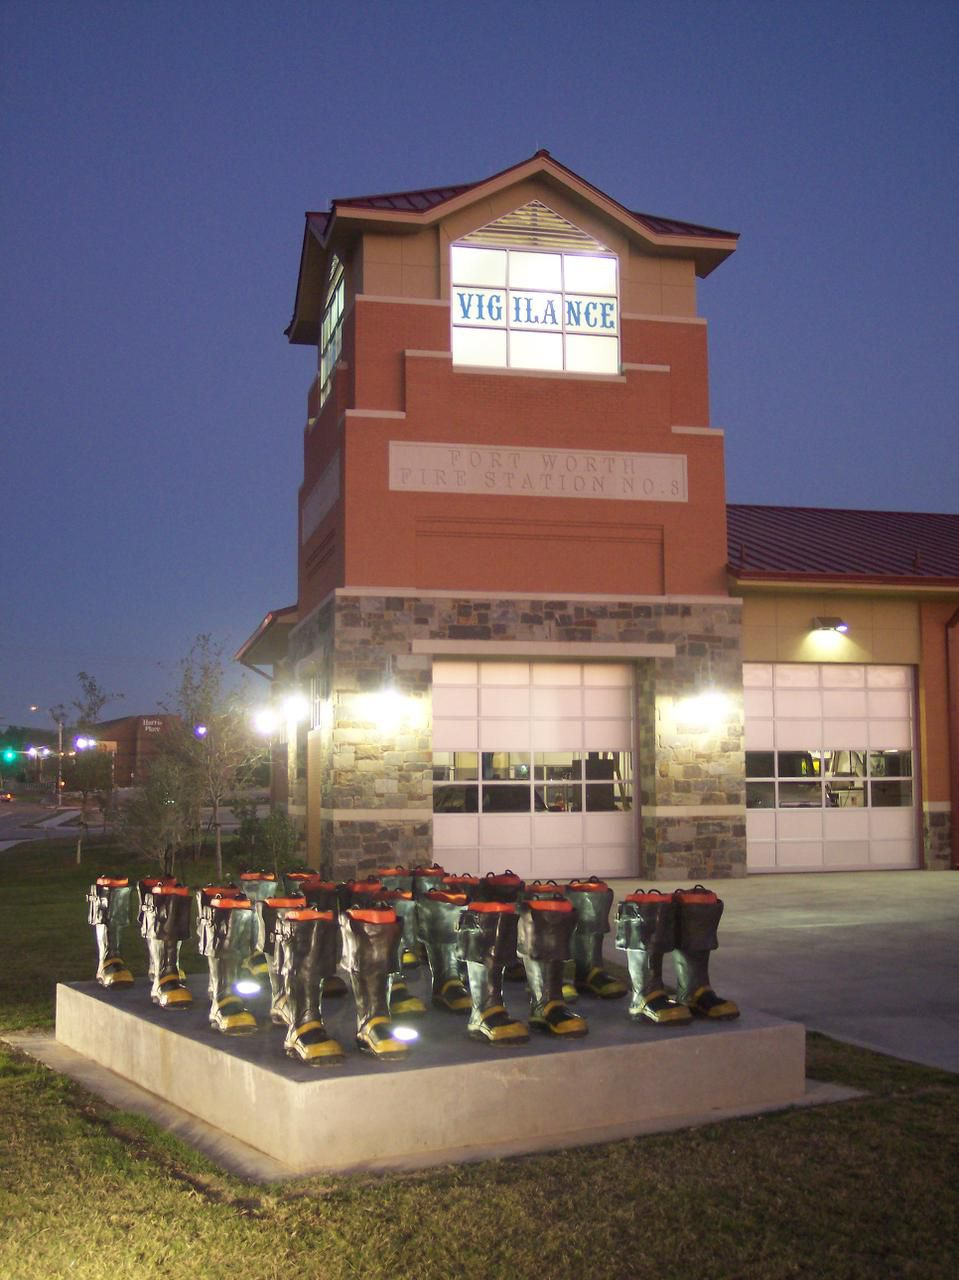 McGehearty won national recognition in 2007 with his United We Stand, an installation of firemen s boots outside Fire Station No. 8 in Fort Worth.